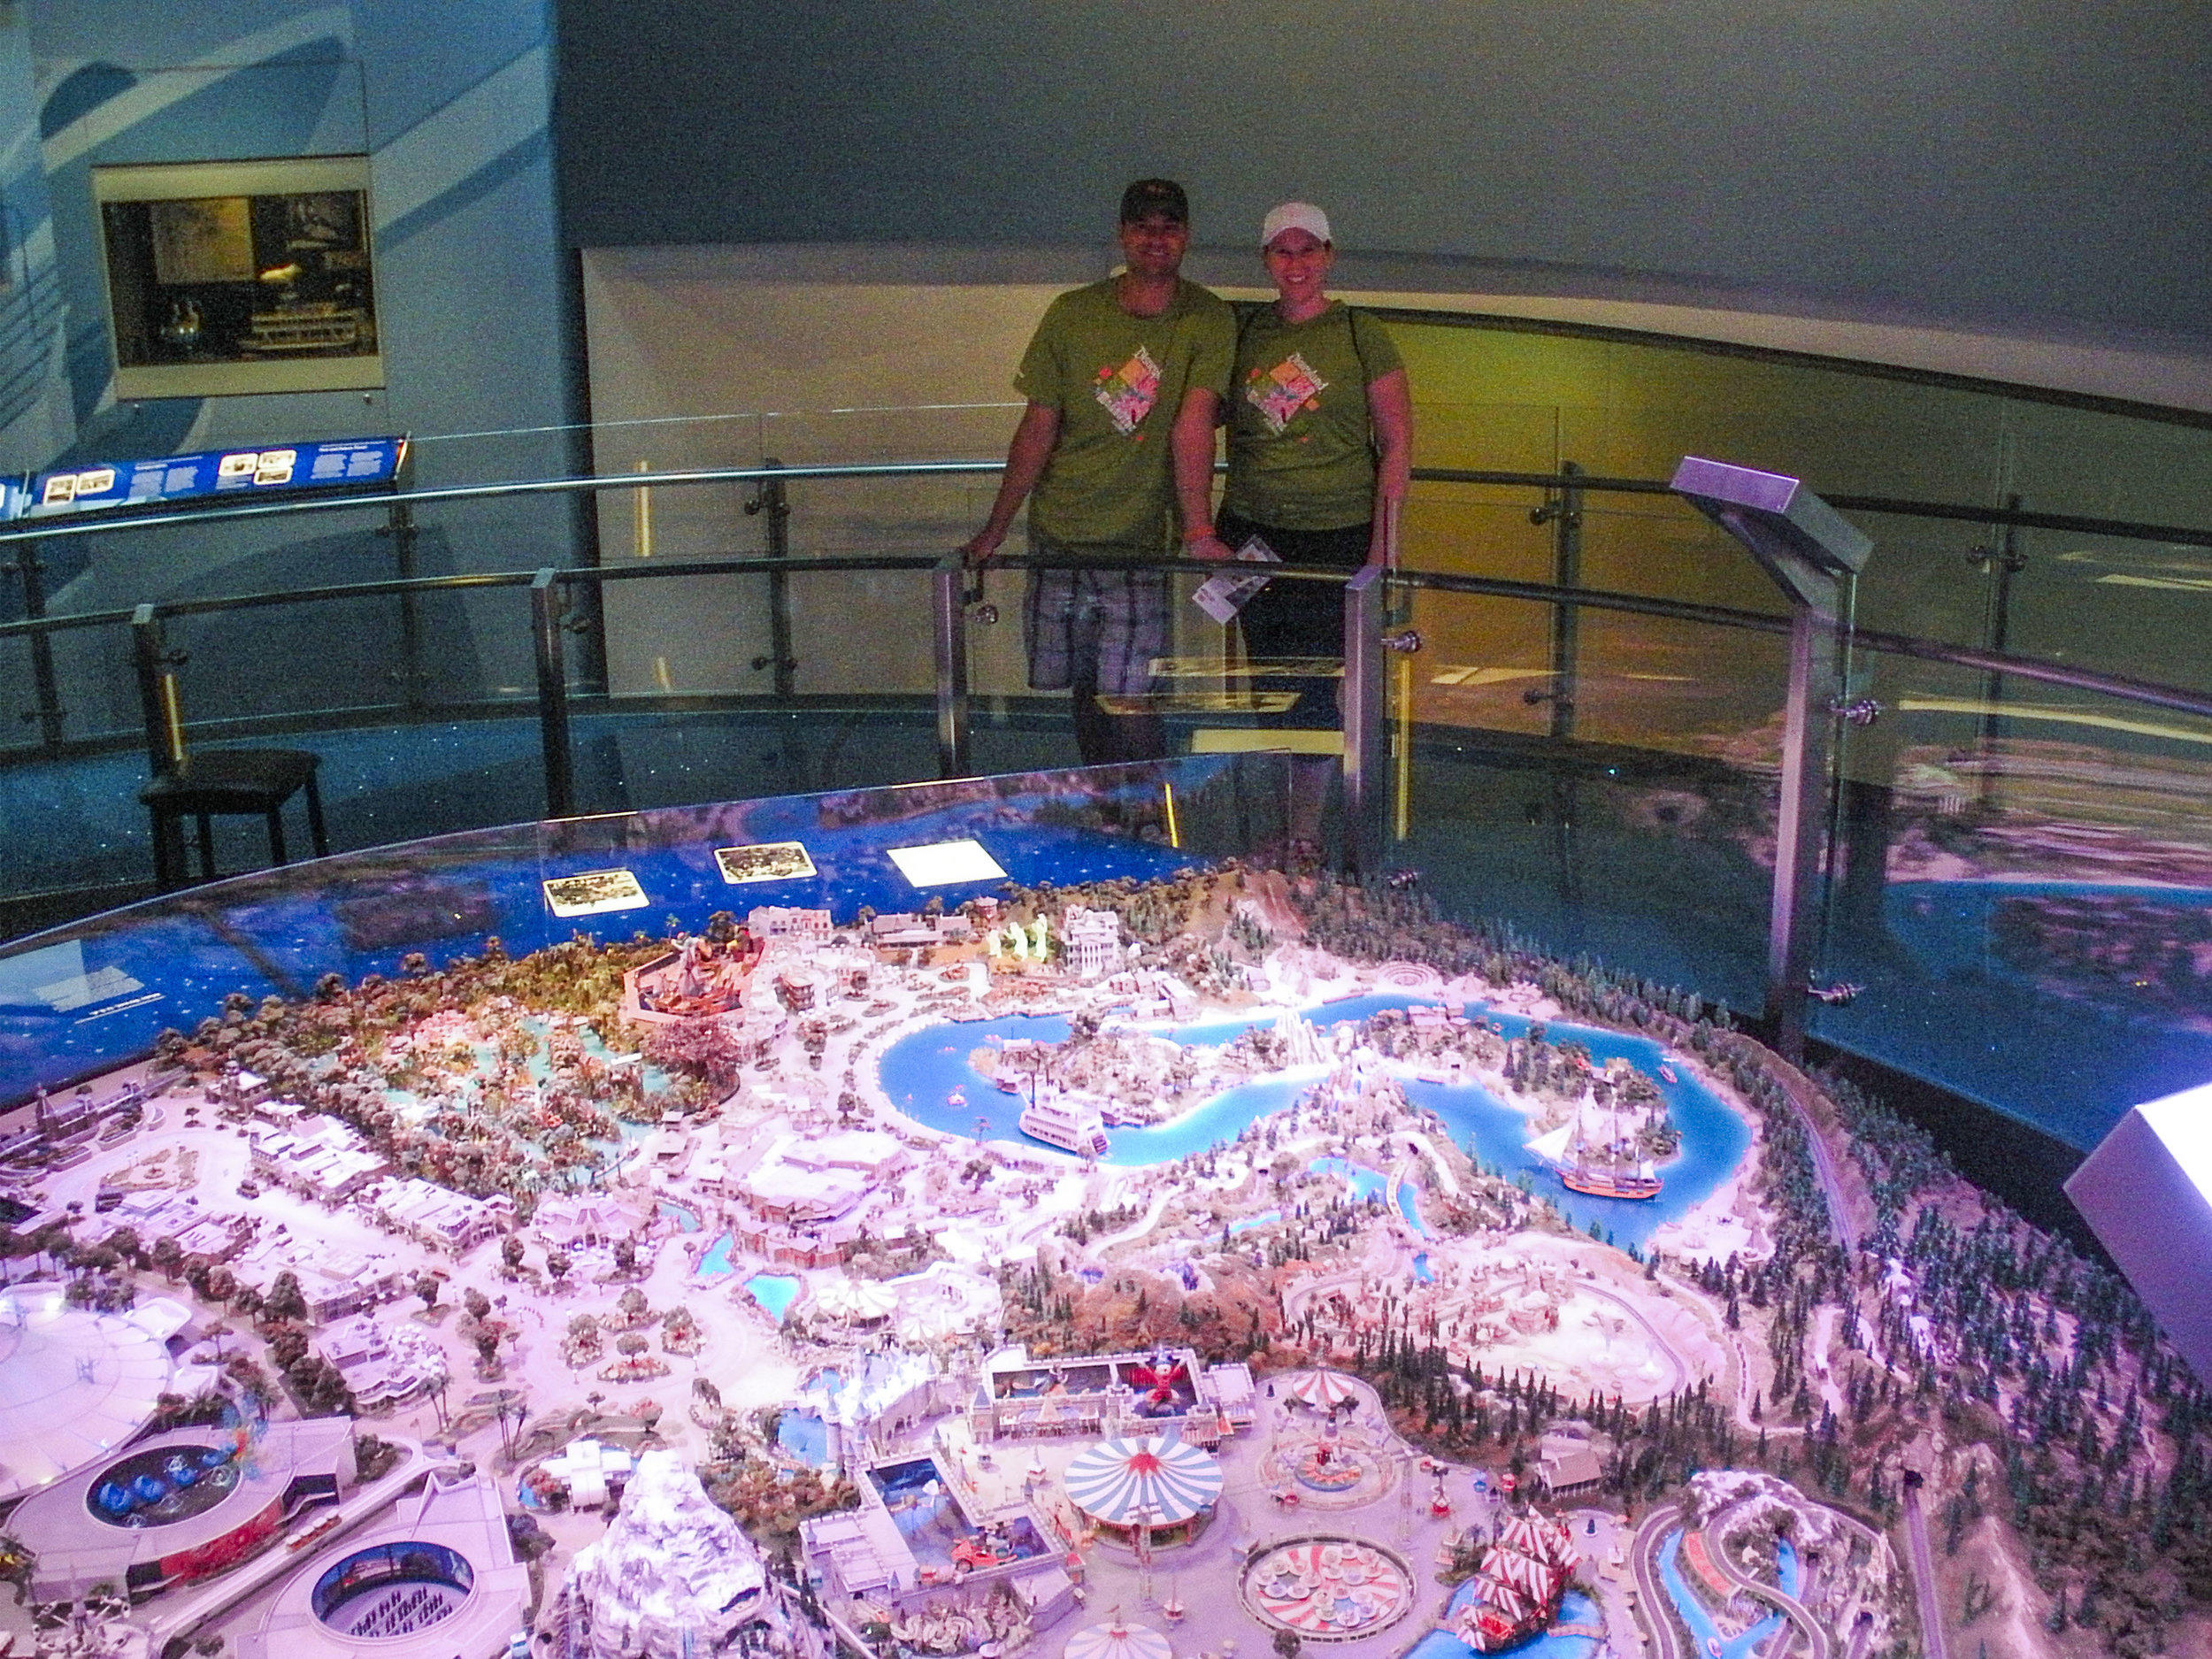 Us with a huge map of Disneyland. (please excuse our grainy pic, the museum lighting was not the best for photos!)